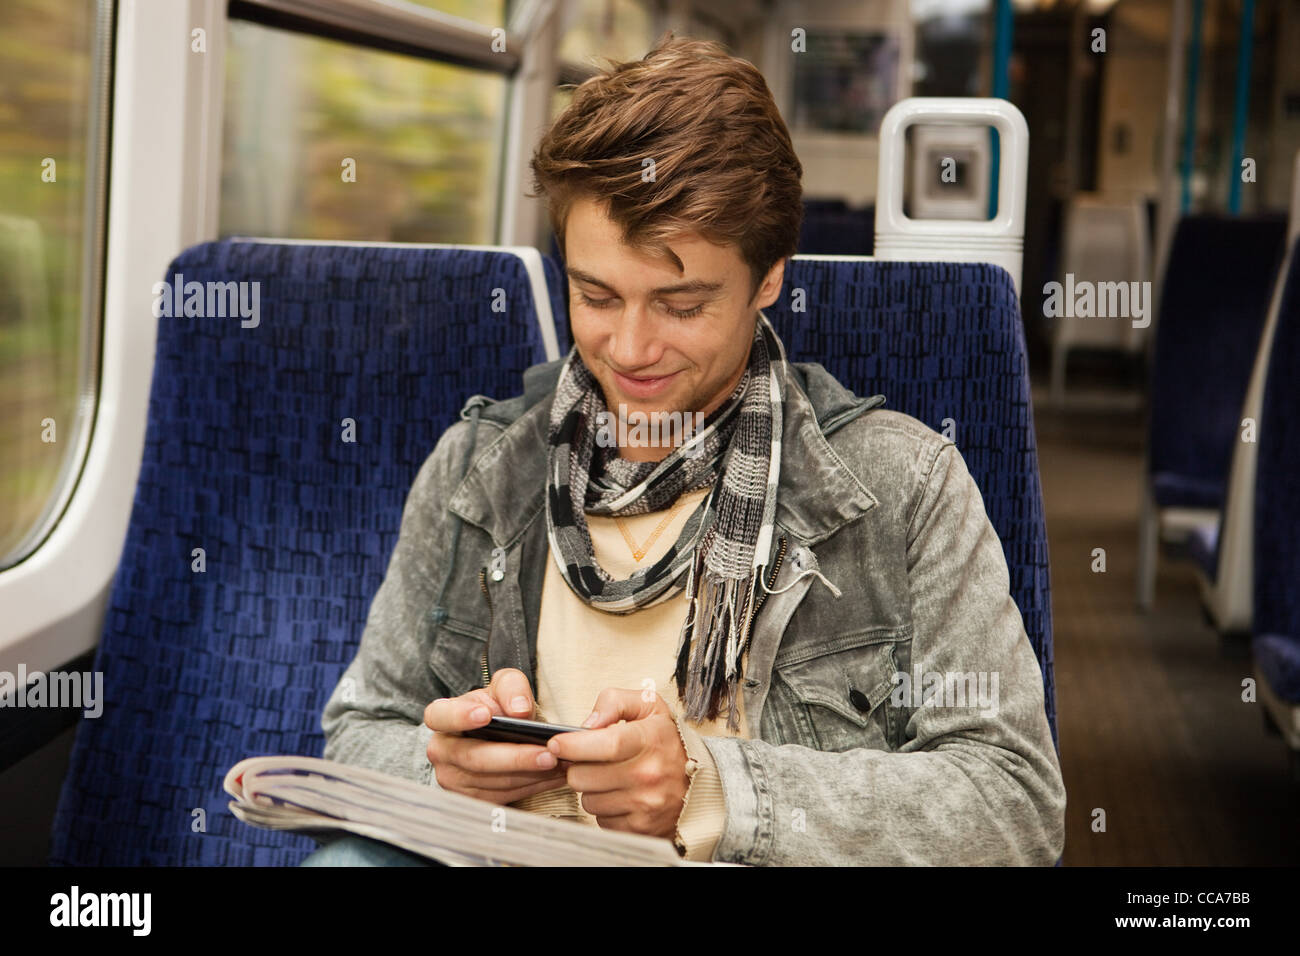 Young man travelling on train using cellphone - Stock Image